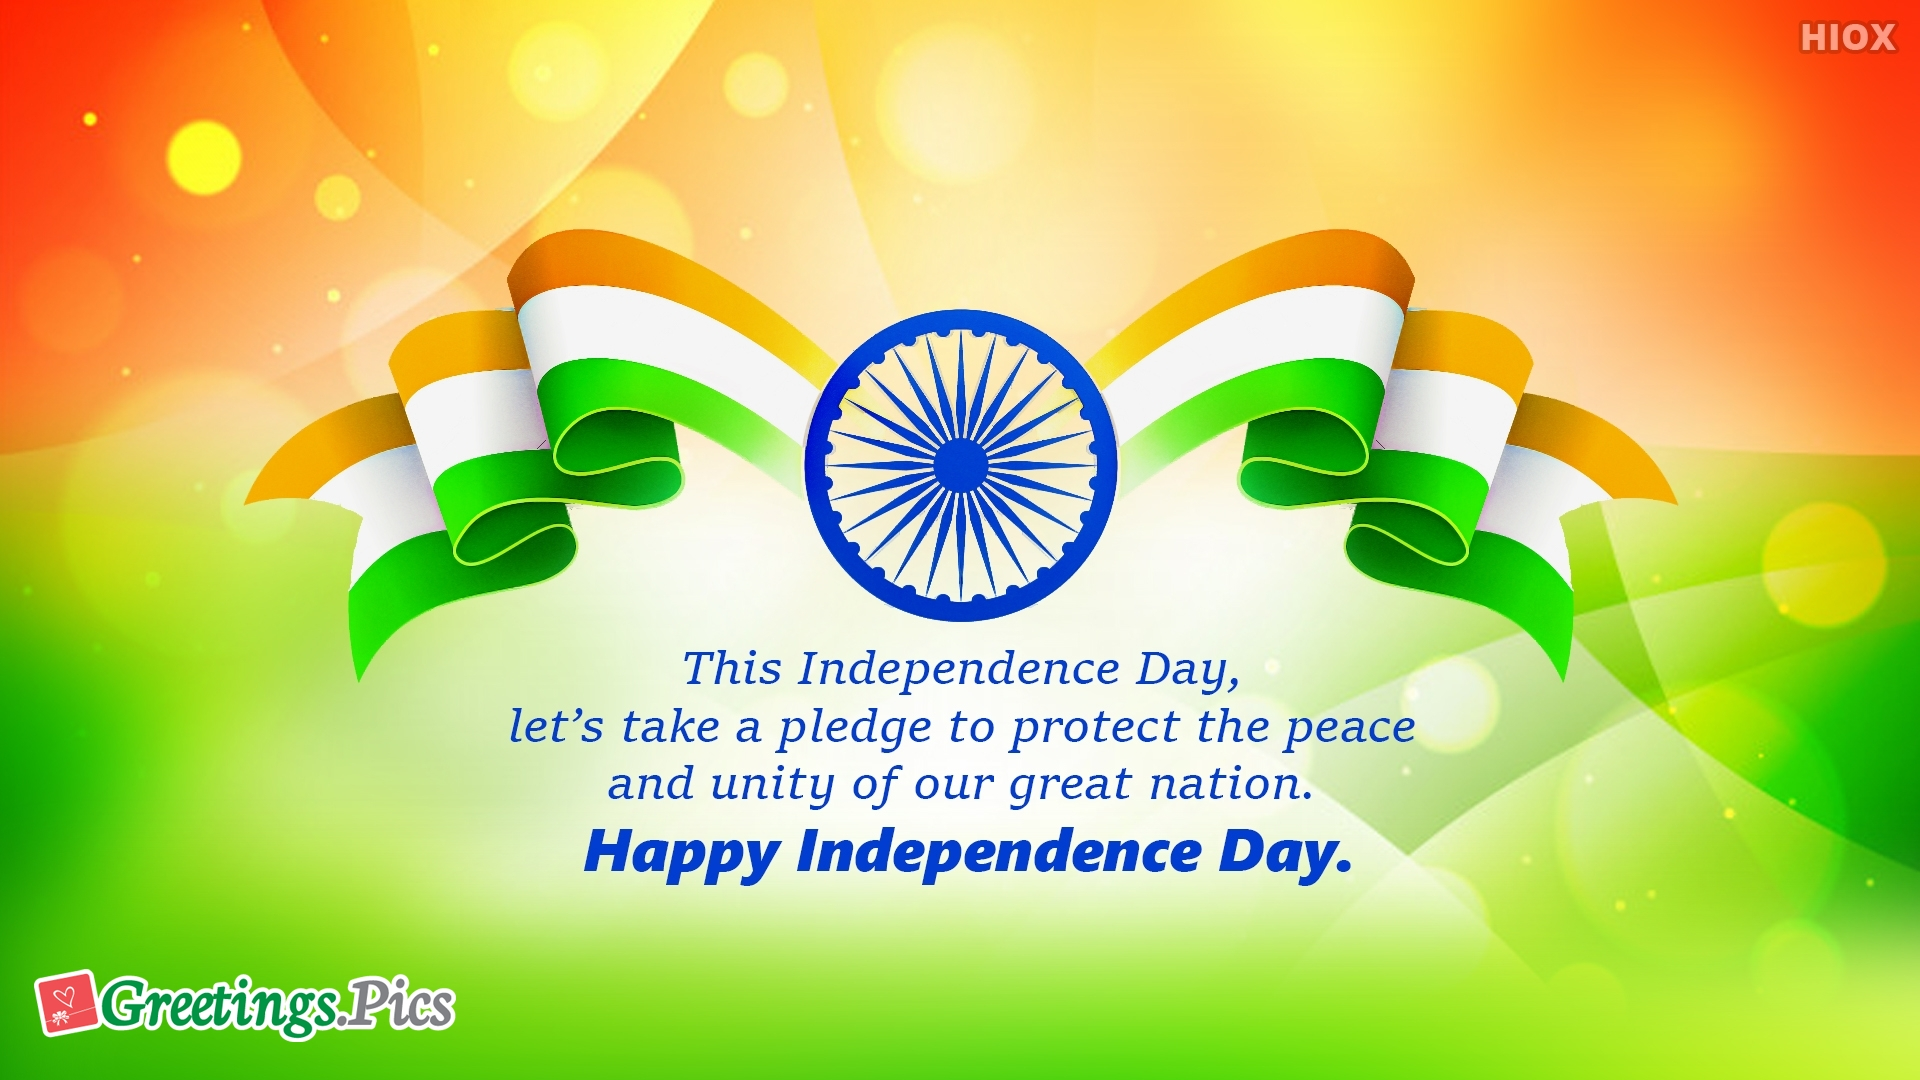 Let's Take A Pledge. Happy Independence Day.